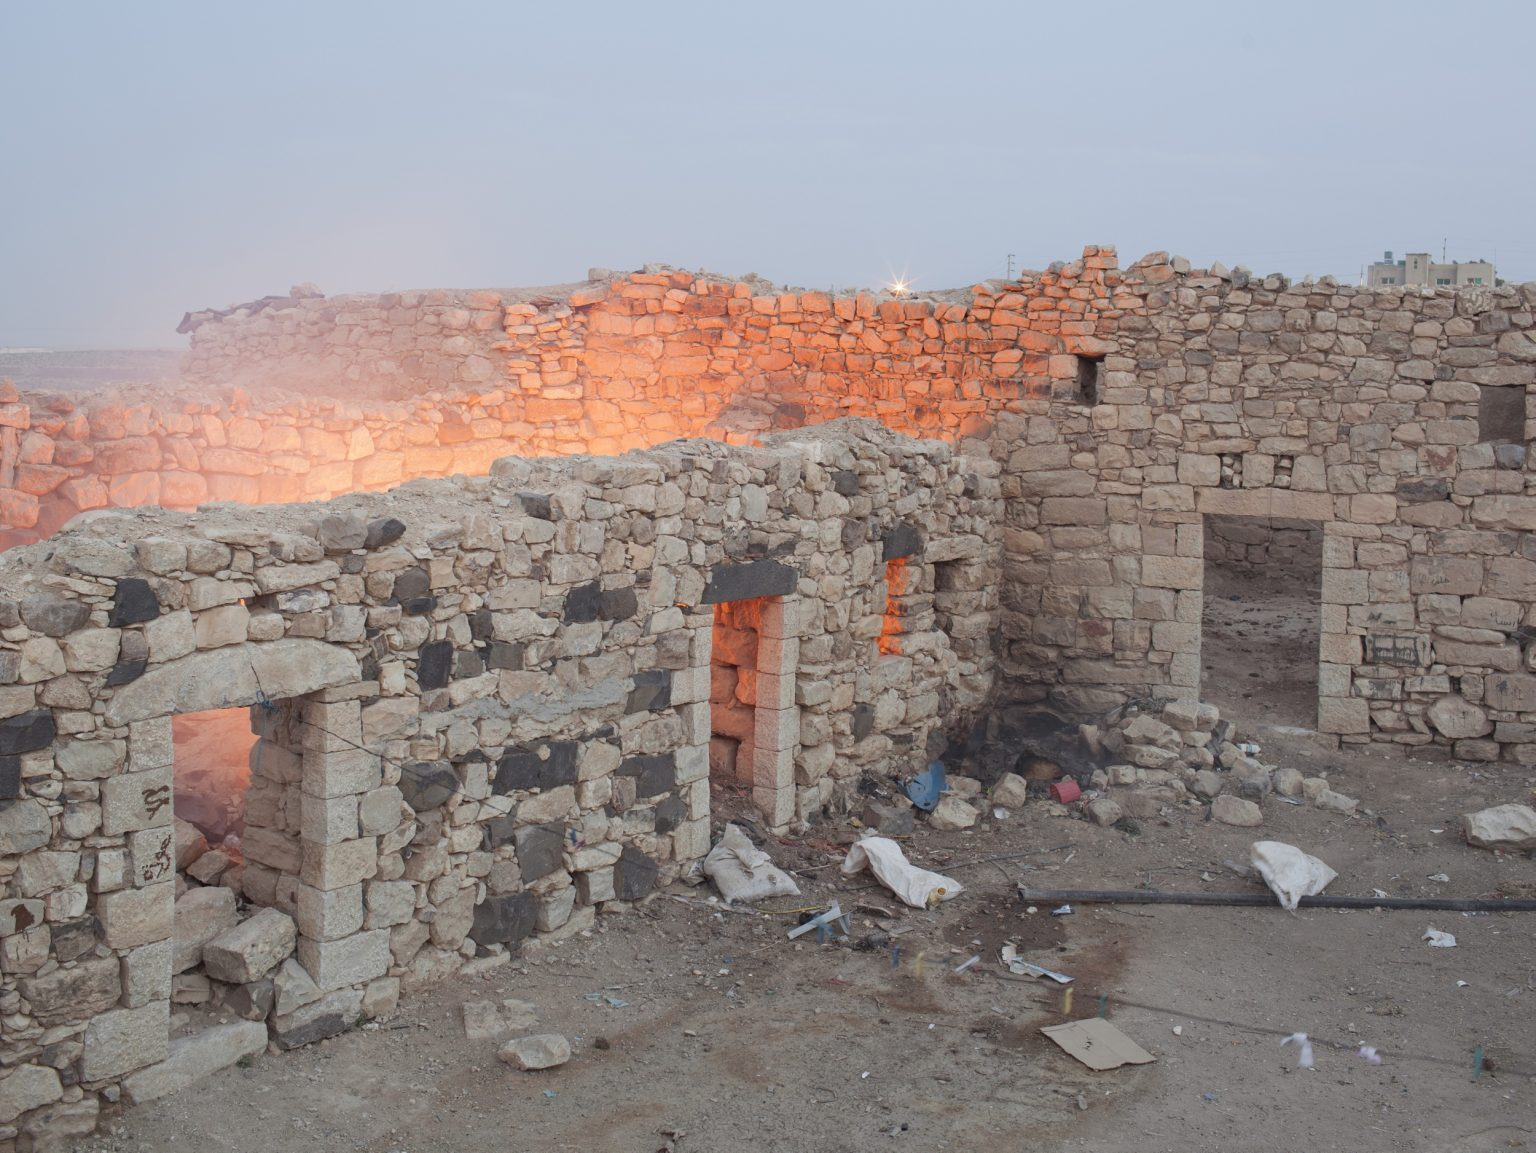 View of the old abandoned houses of Smakieh, a small town in the Jordan desert inhabitated by two Christian families.